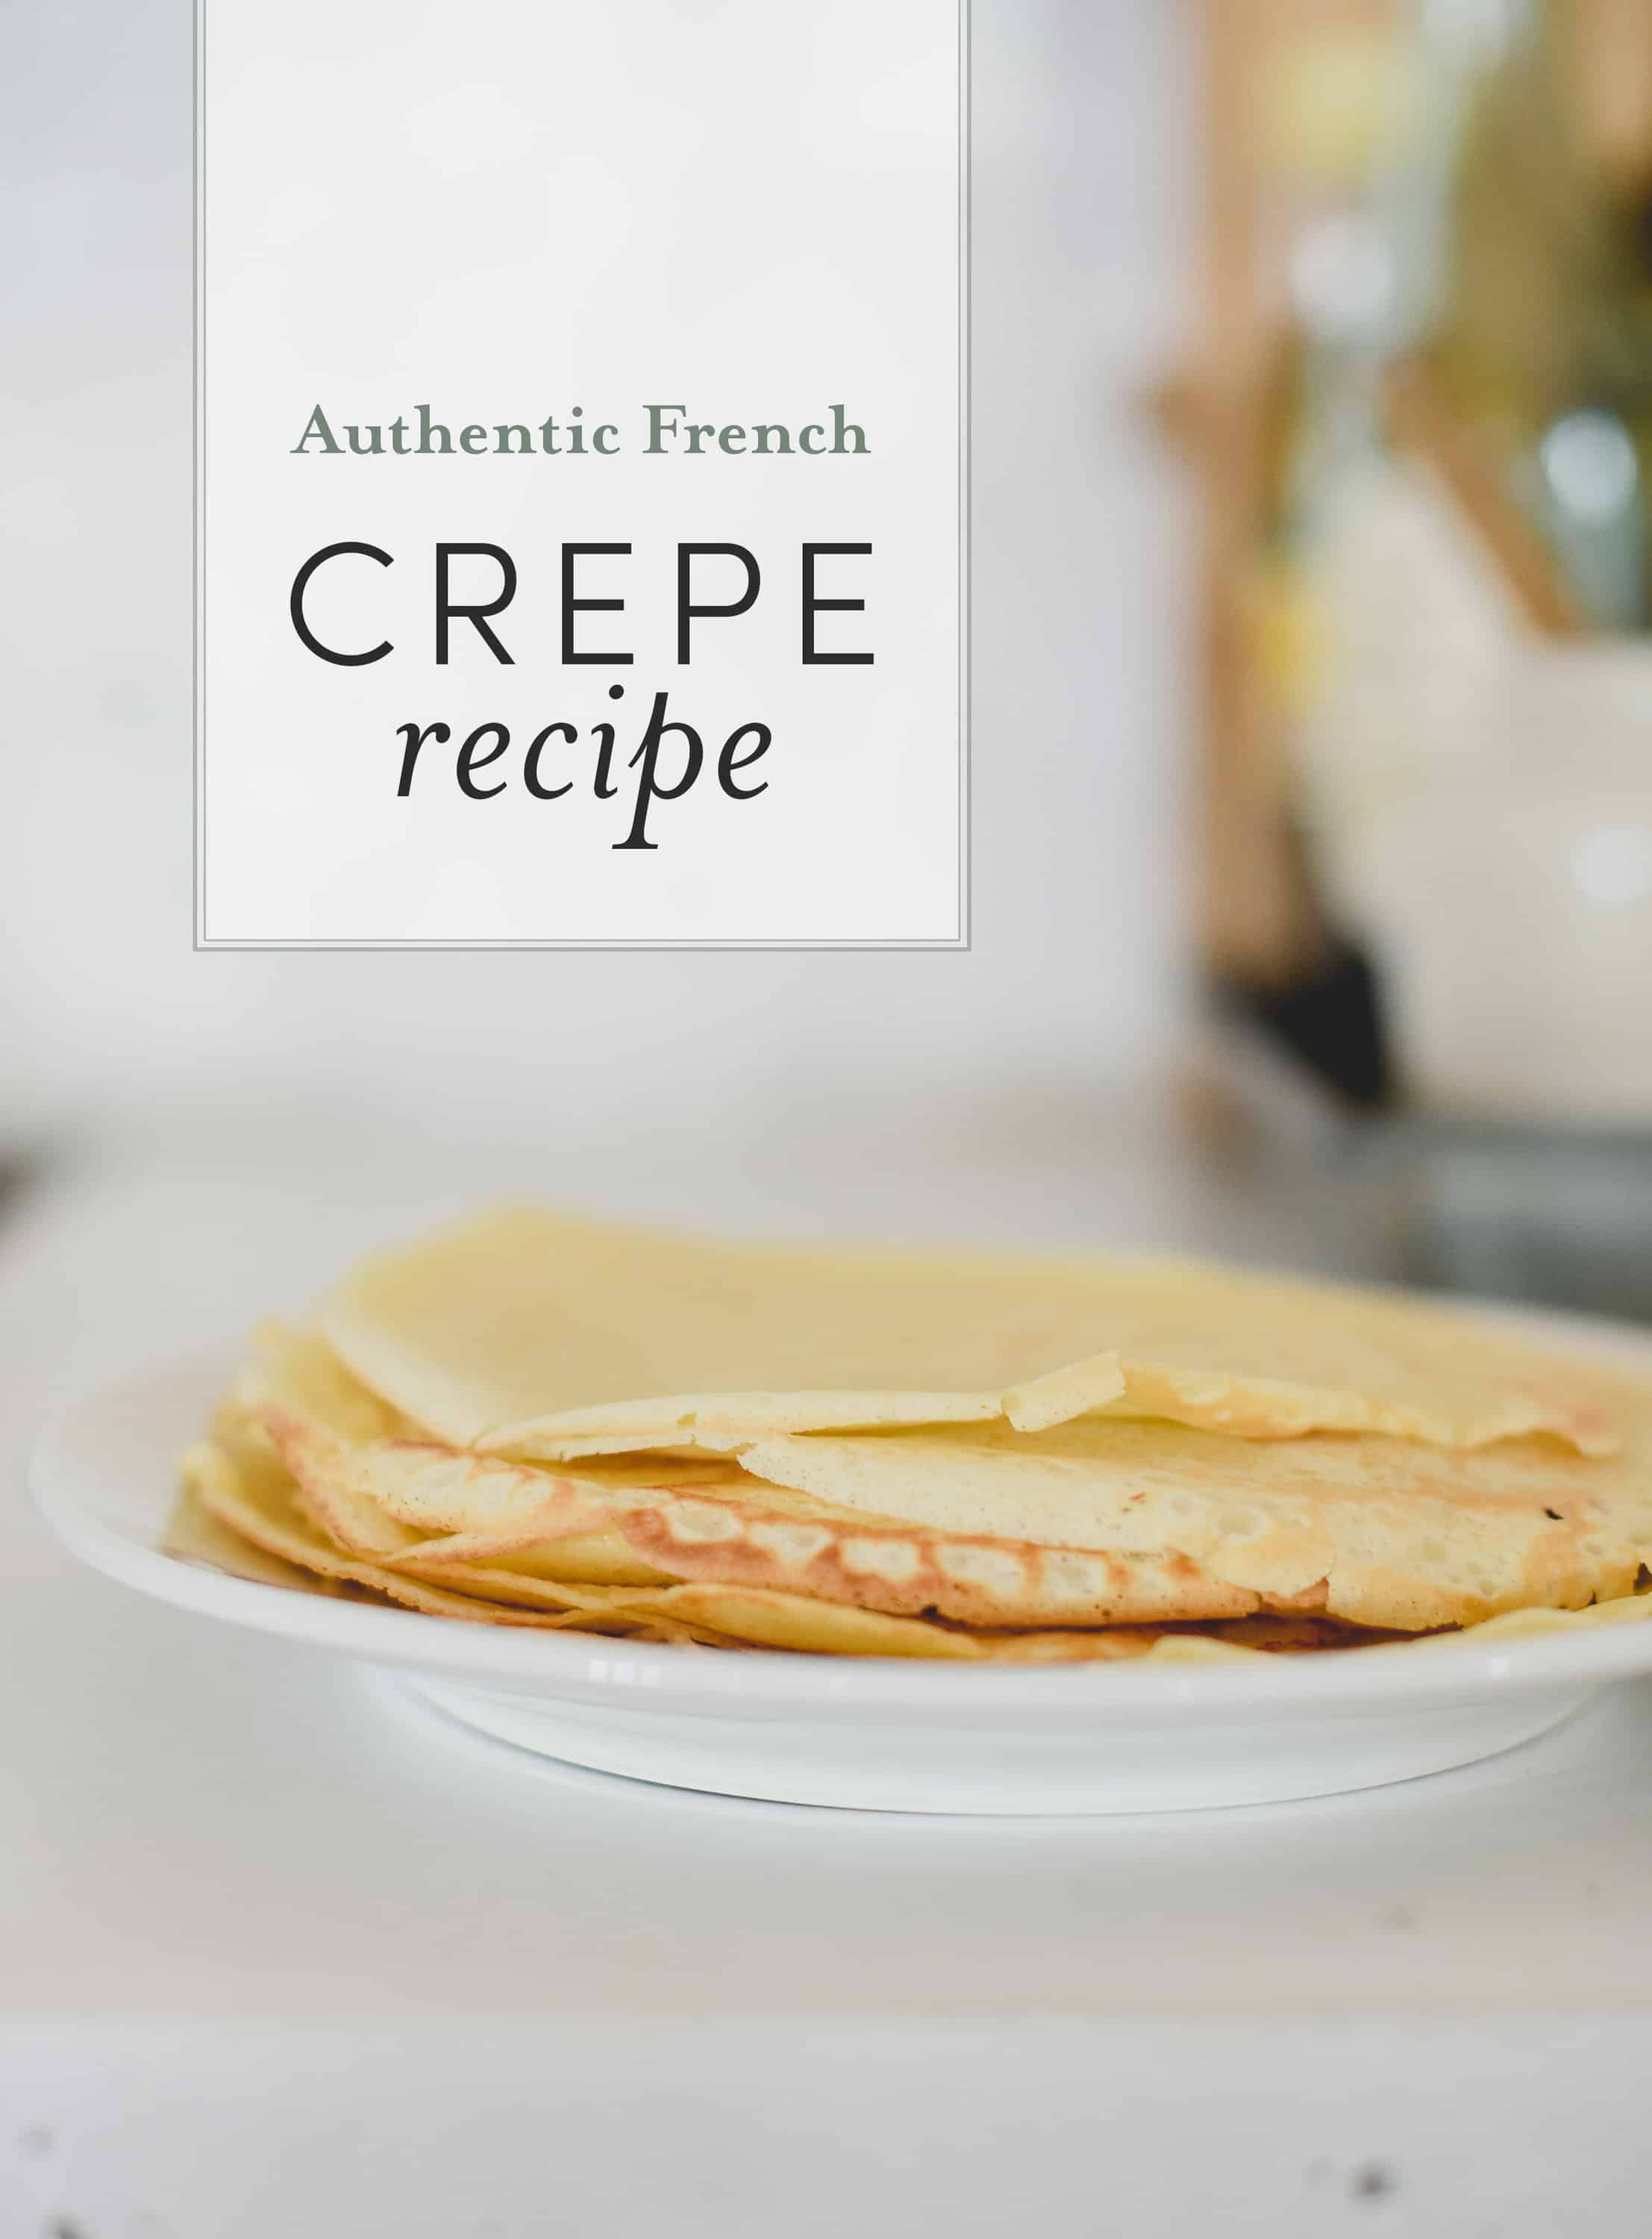 Looking for a delicious, authentic, and easy French crepe recipe? This family recipe will become a Sunday morning favorite! Use this French crepe recipe for savory or sweet crepes to enjoy for breakfast, lunch, or dinner!